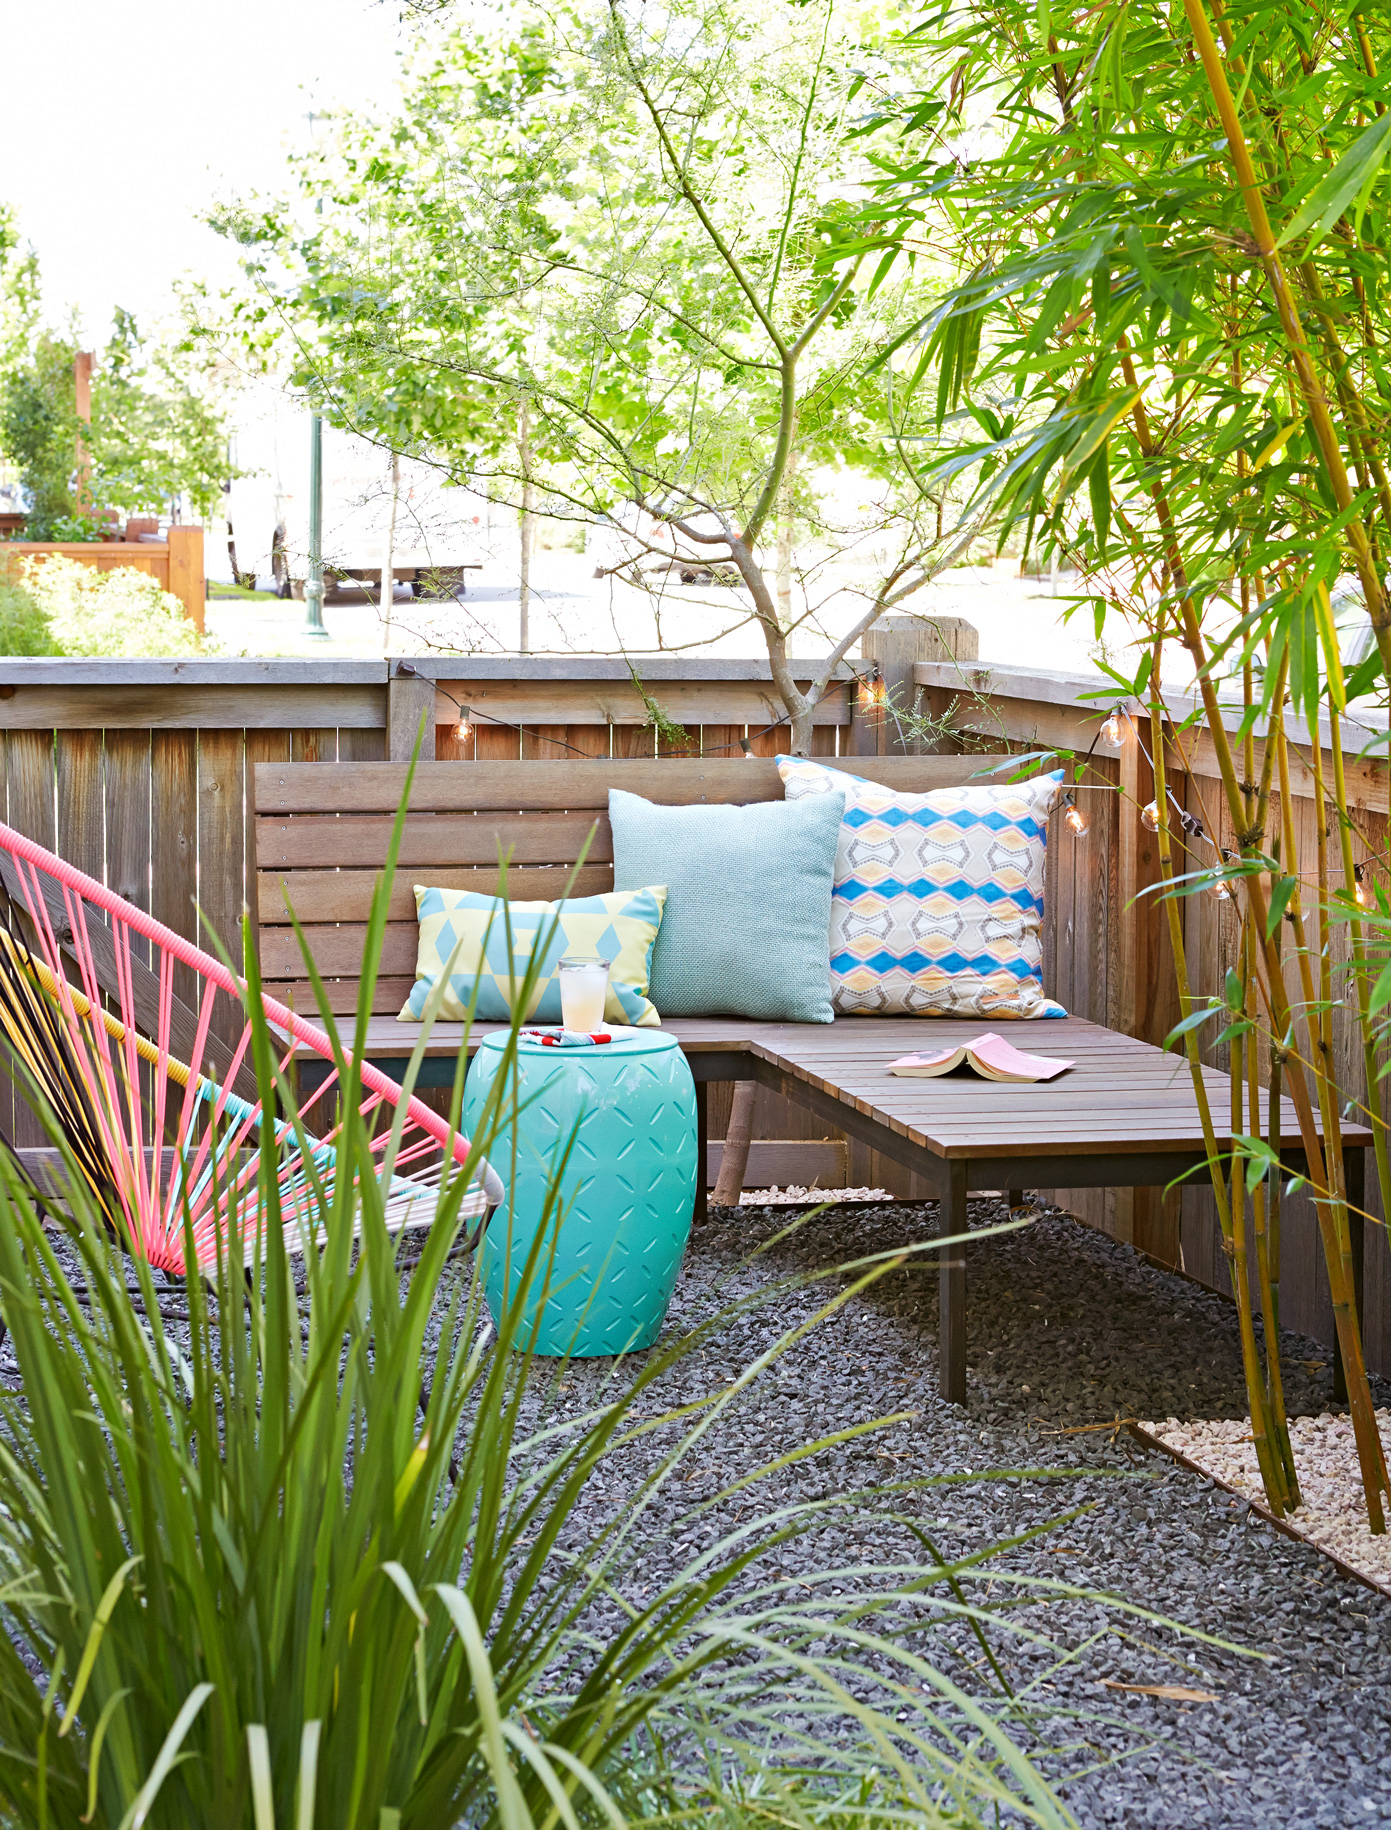 23 Inexpensive Ways To Dress Up Your Backyard for 12 Some of the Coolest Concepts of How to Improve Backyard Decorating Ideas On A Budget